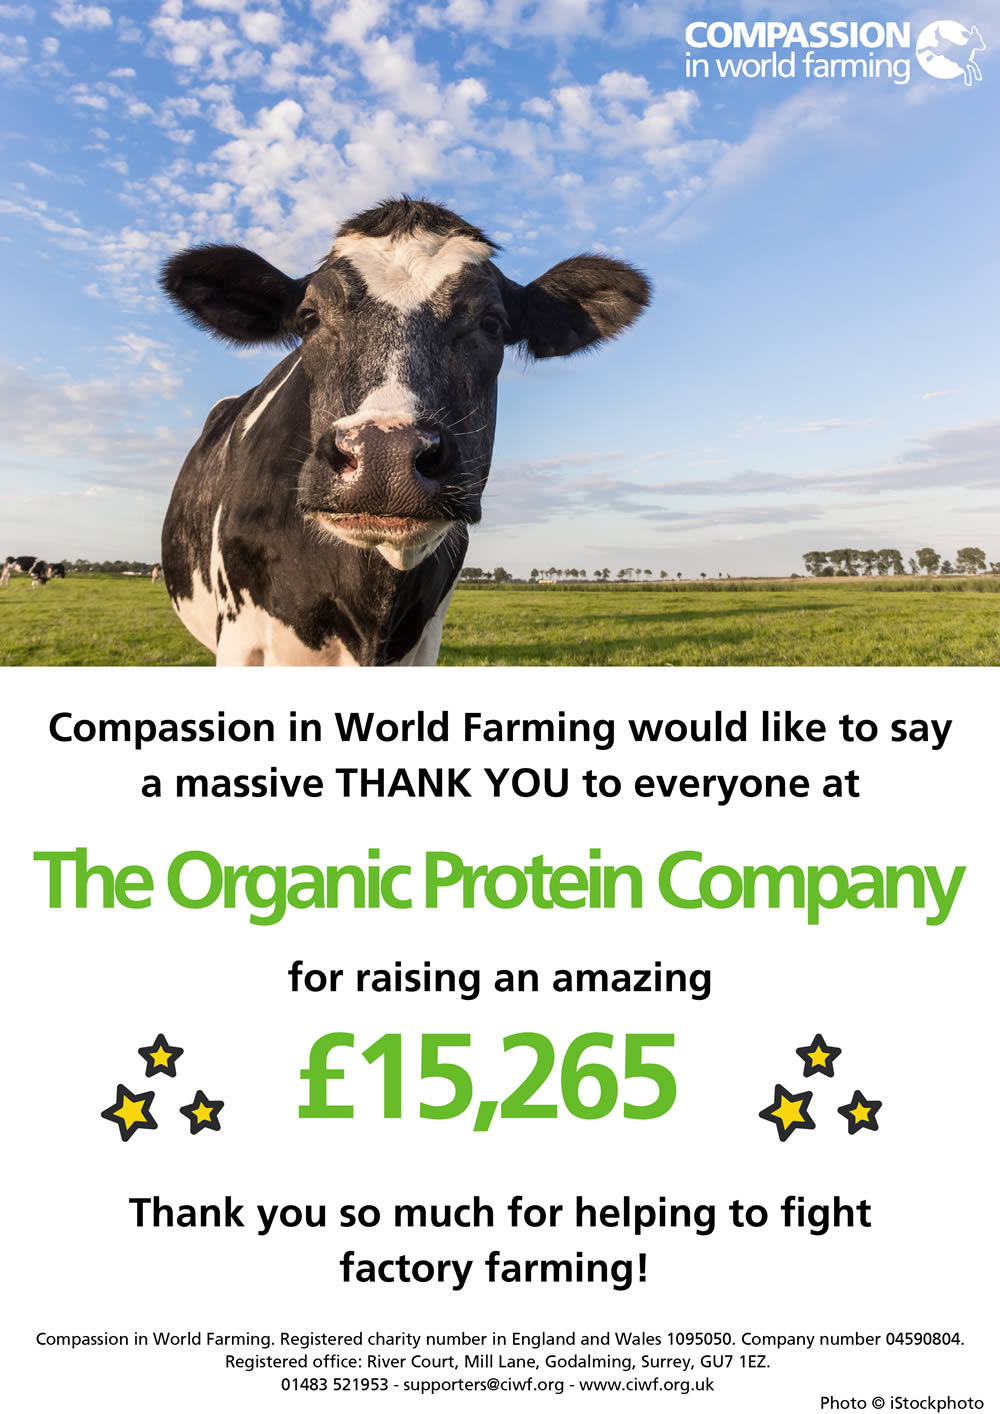 Compassion in World Farming Thank You Certificate